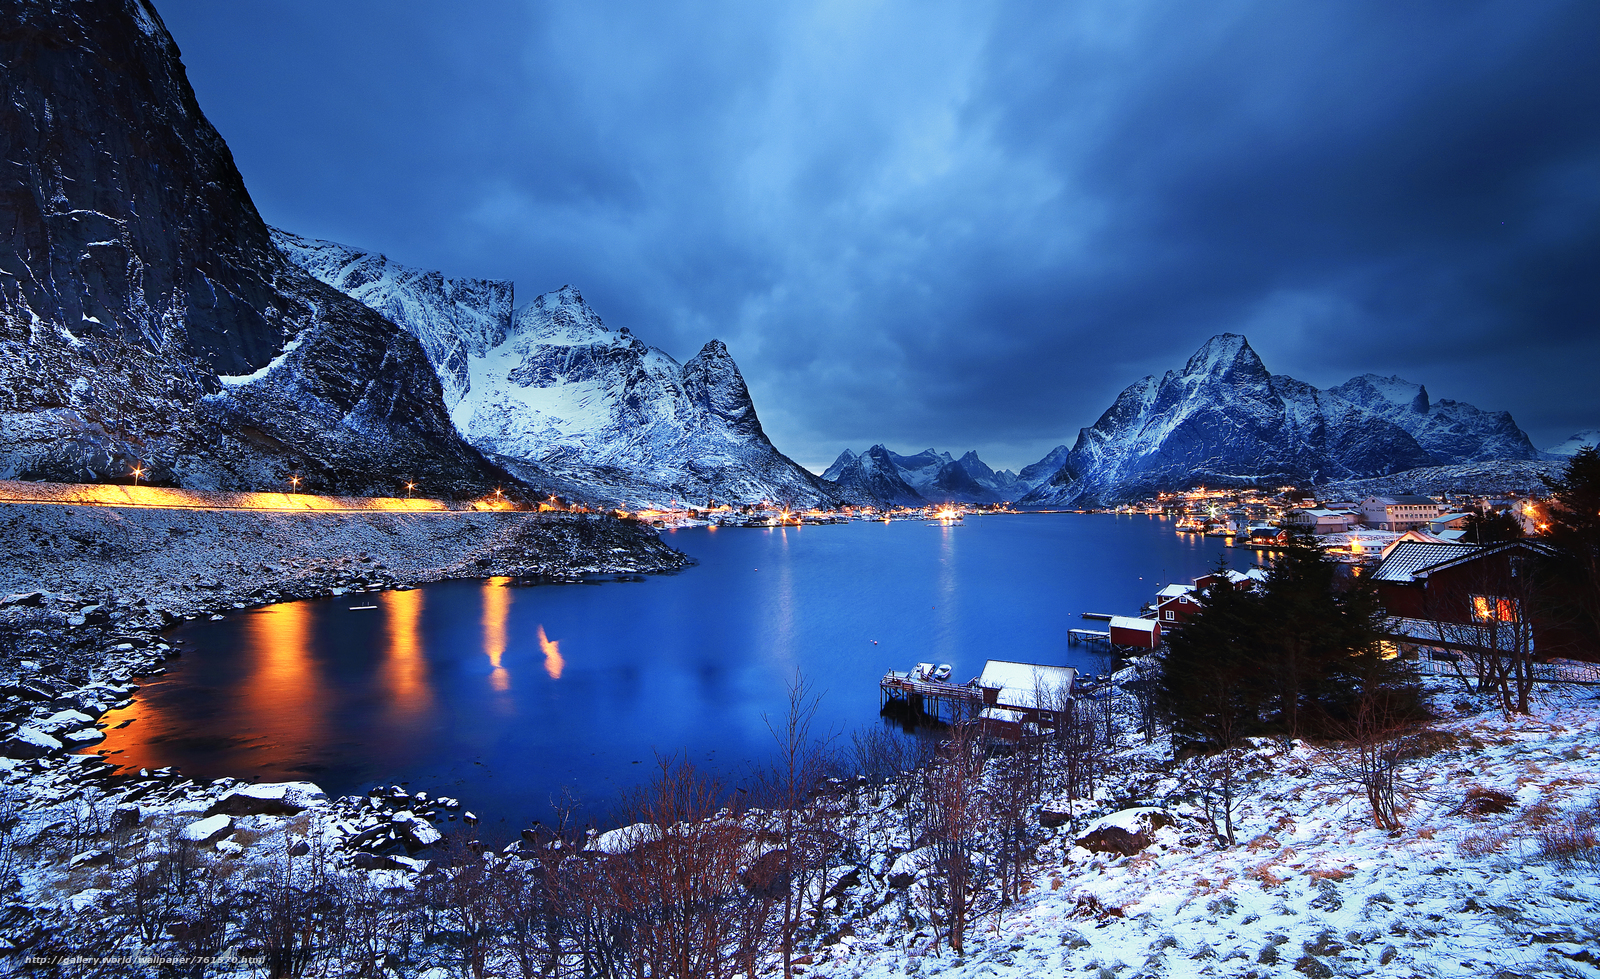 Lofoten, Rhine, Queen, Norway, Lofoten, Lofoten Islands